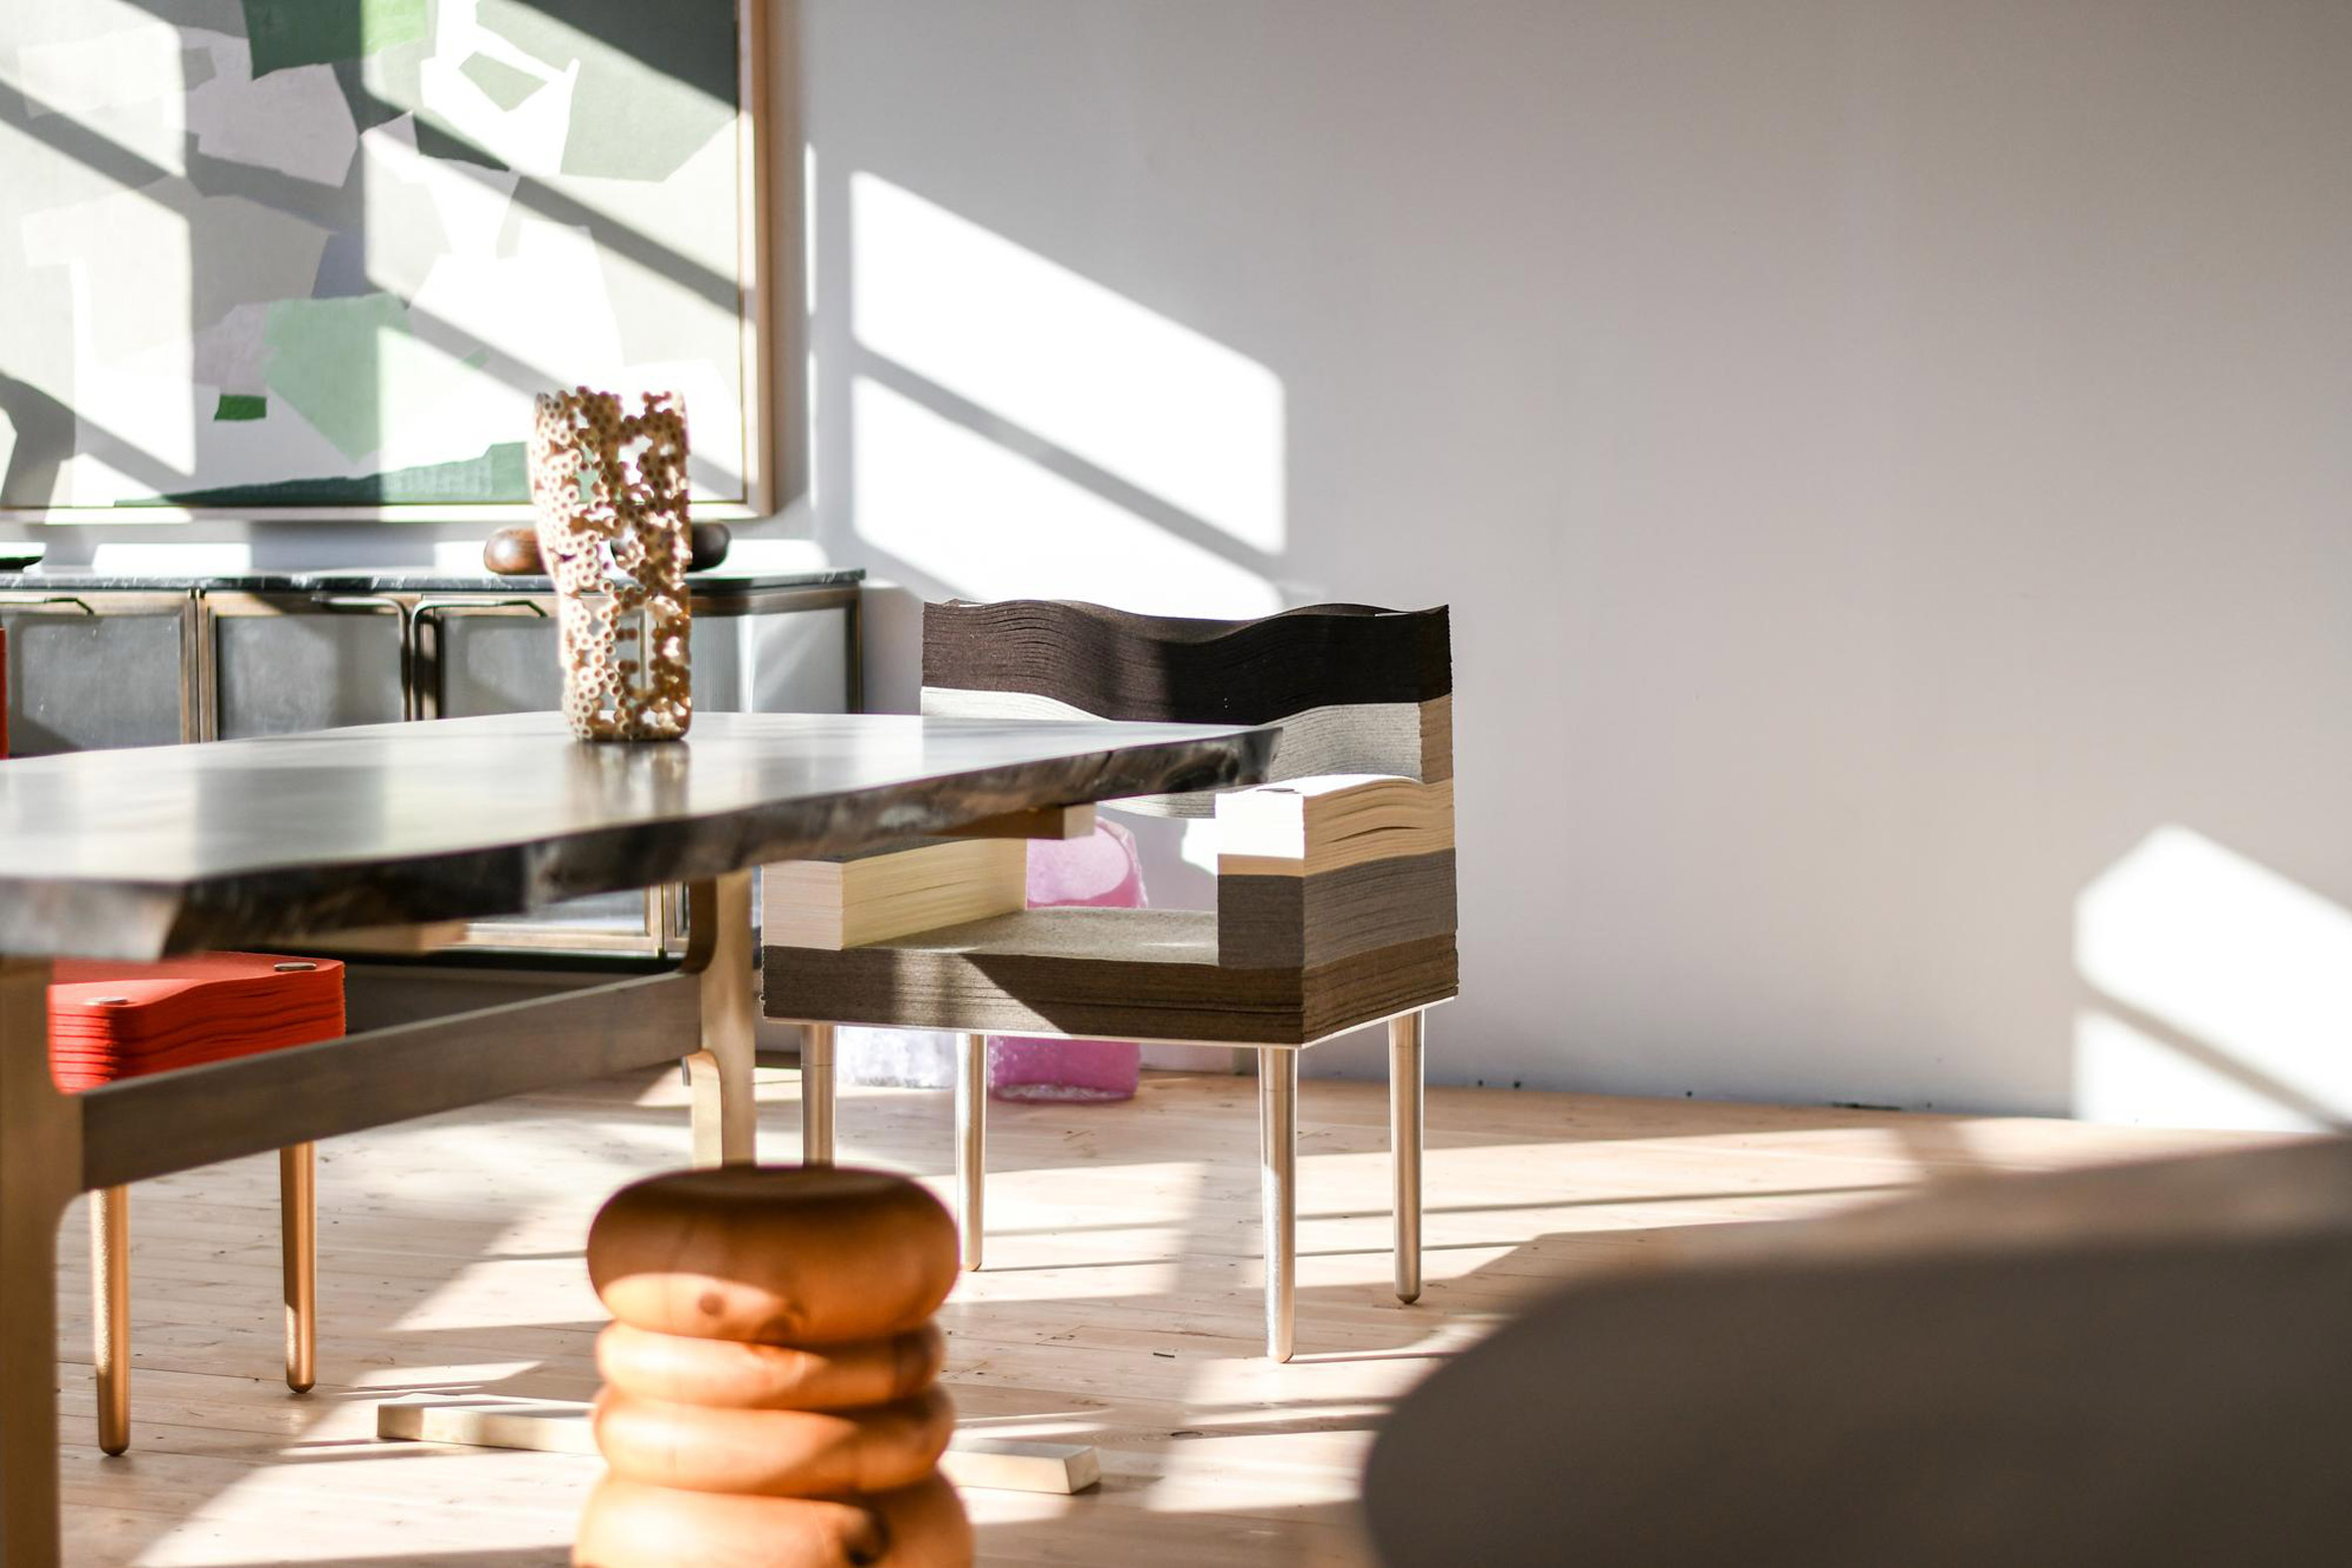 Decorative table at Alpenglow Projects in Vancouver